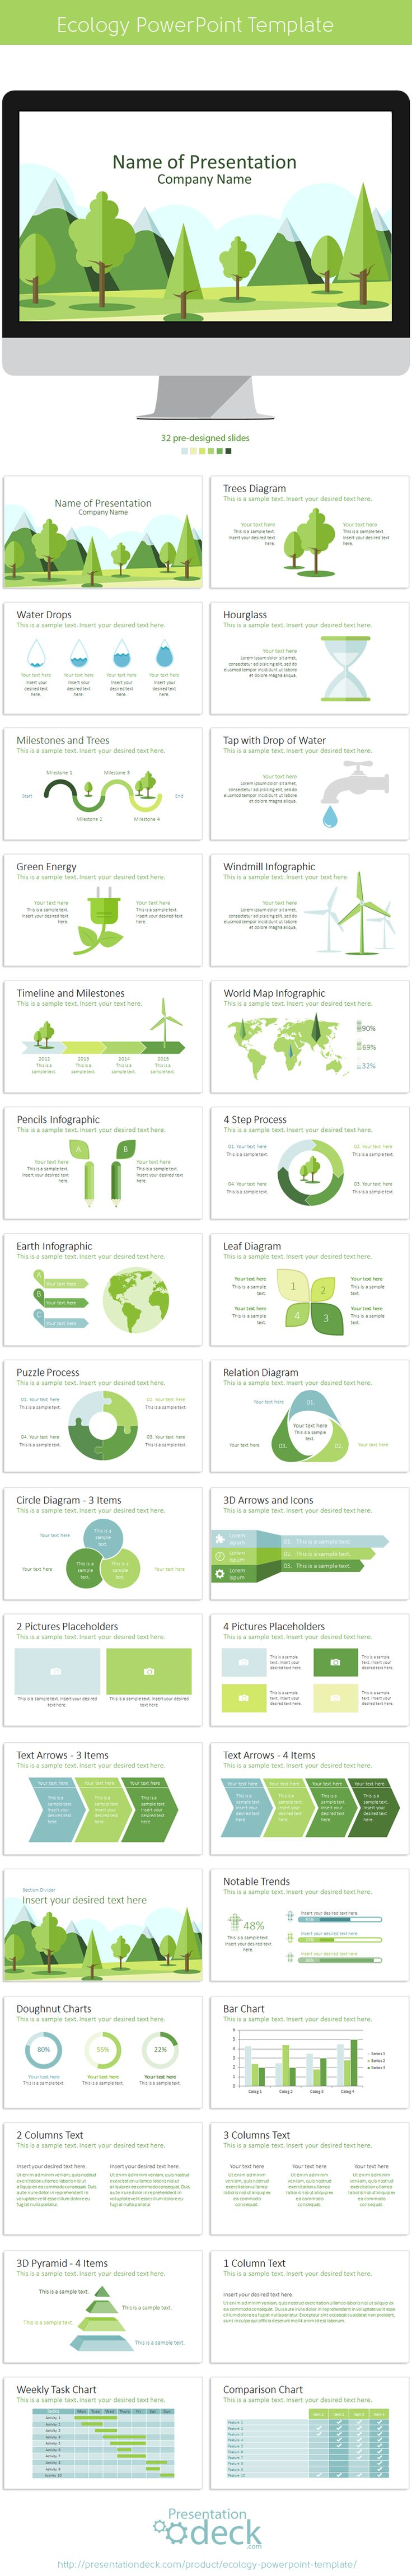 Ecology PowerPoint Template with 32 pre-designed slides. #ecology #powerpoint #presentations #green